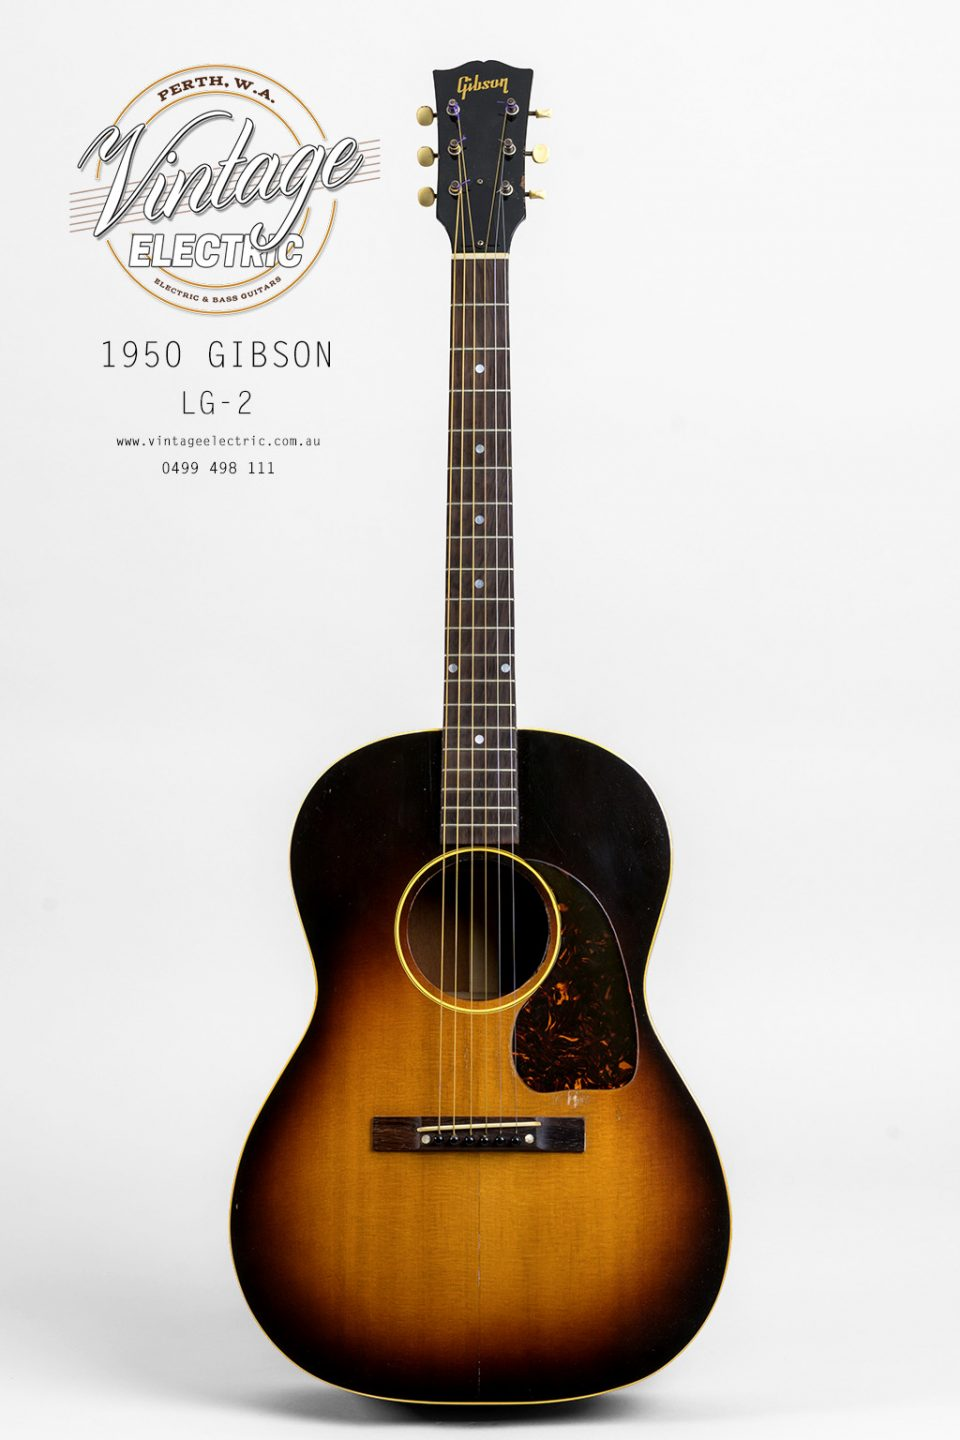 1950 Gibson LG-2 US Acoustic